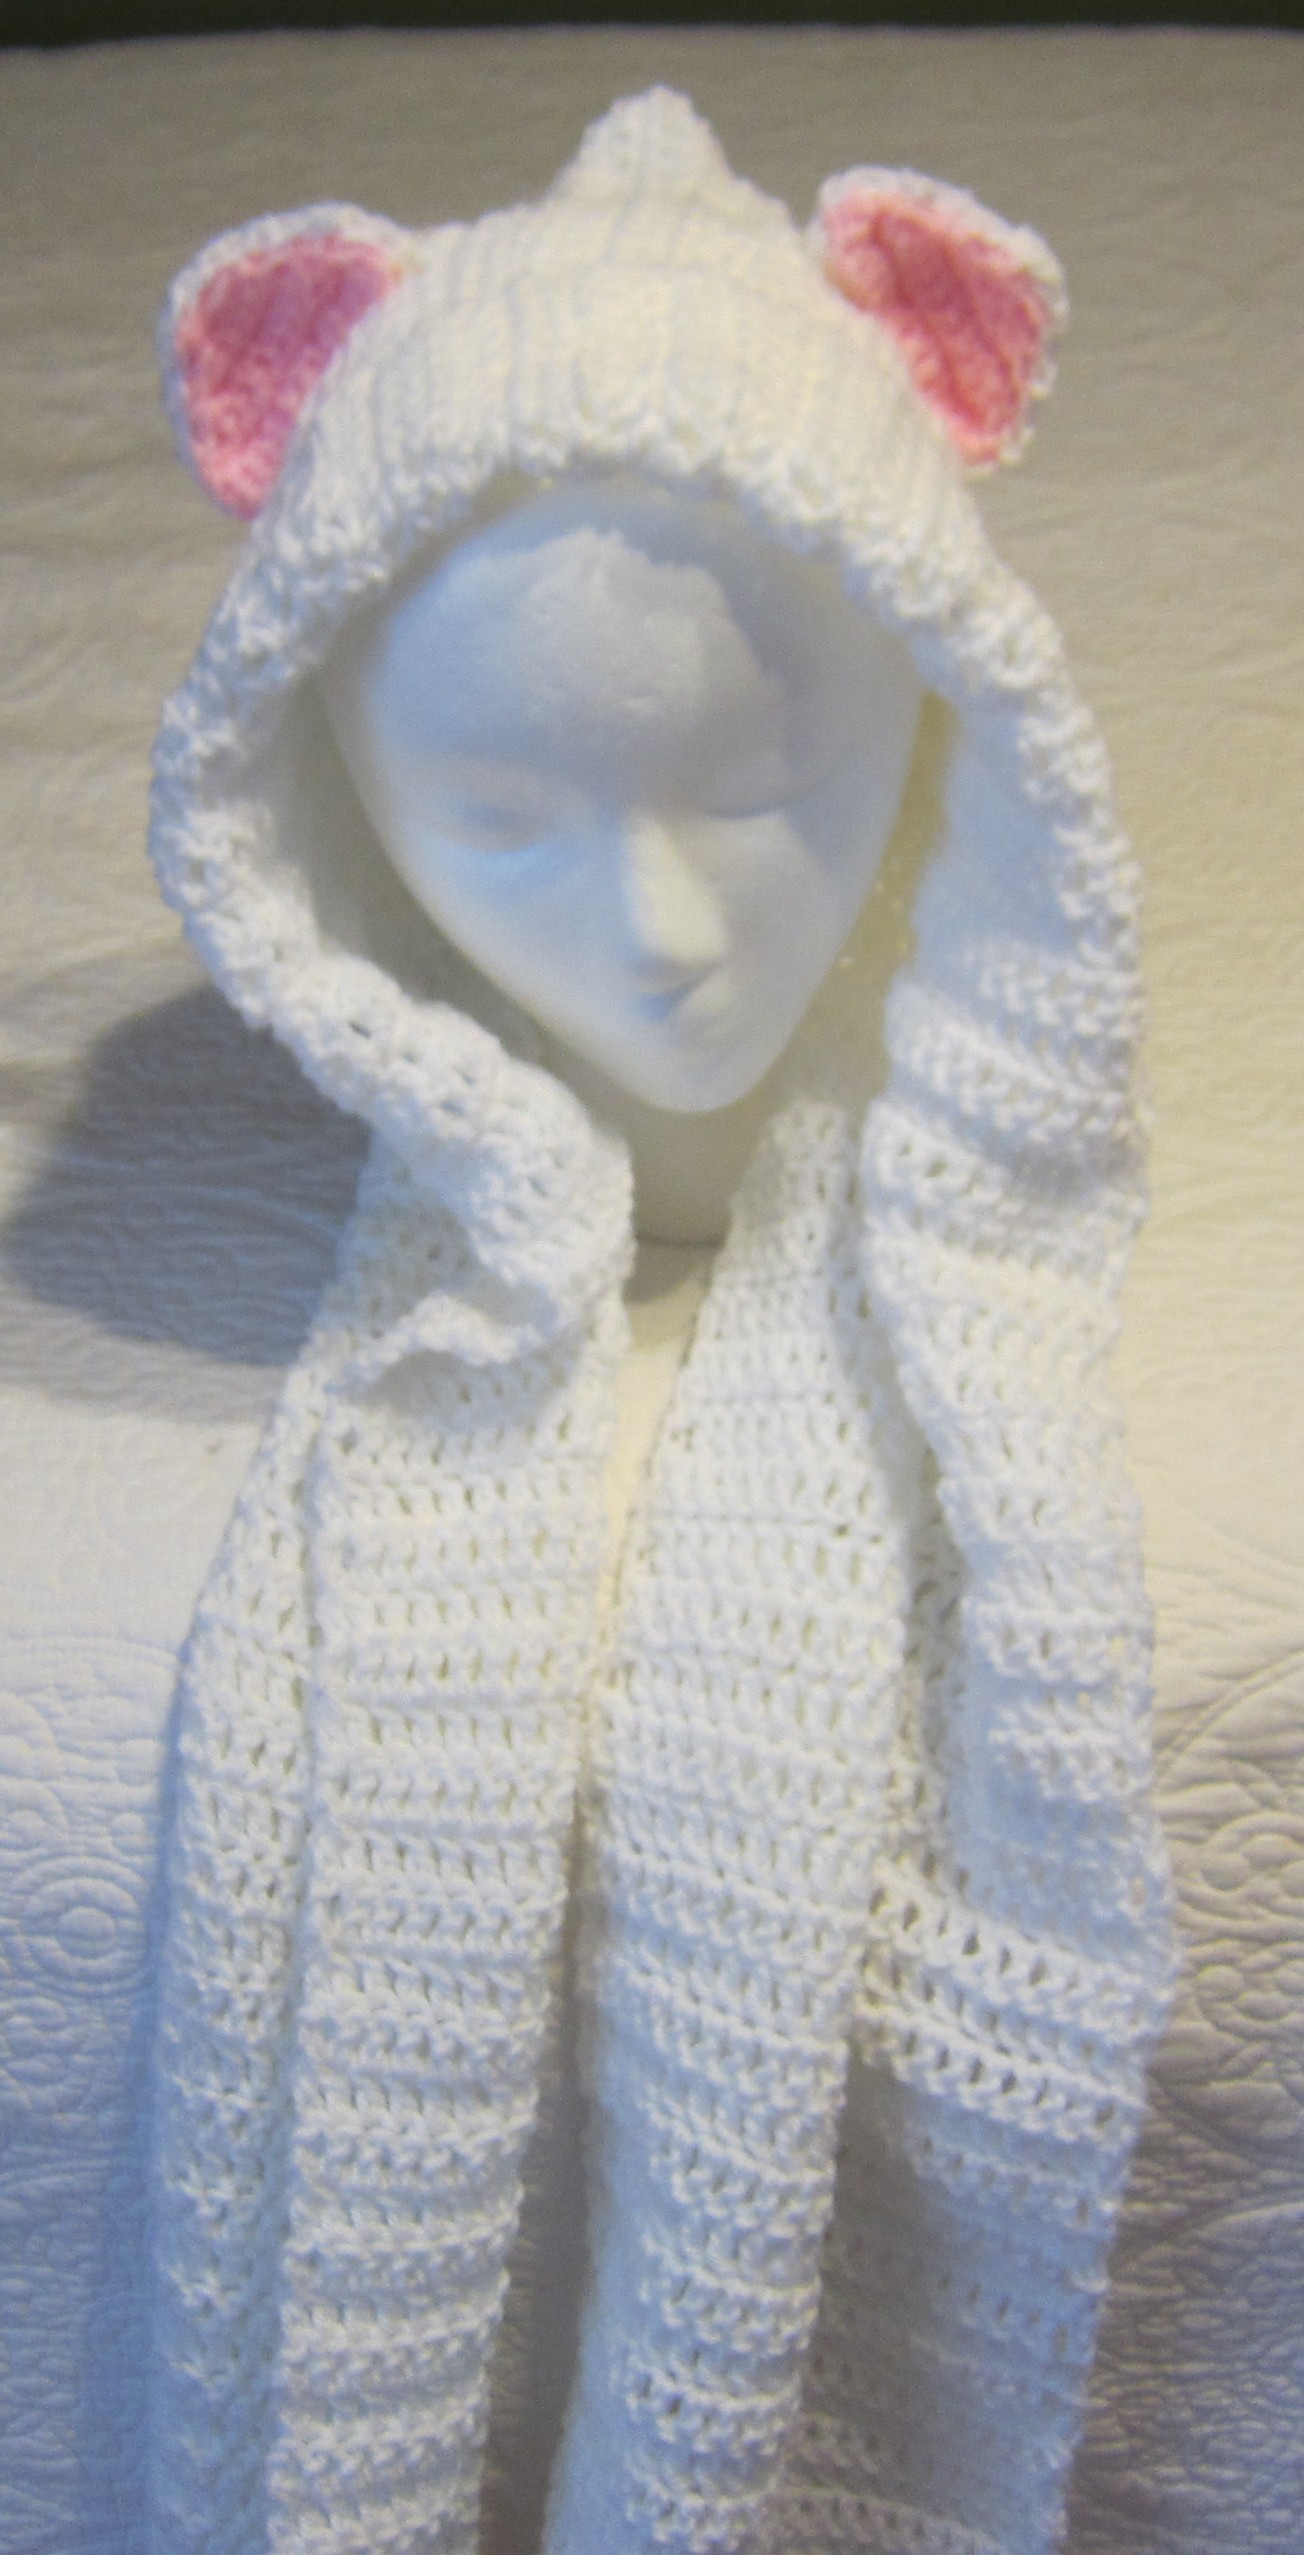 Crochet Pattern Hooded Scarf With Ears : Crochet, Hooded Cat Scarf,Cat Ears,White Hooded Scarf ...